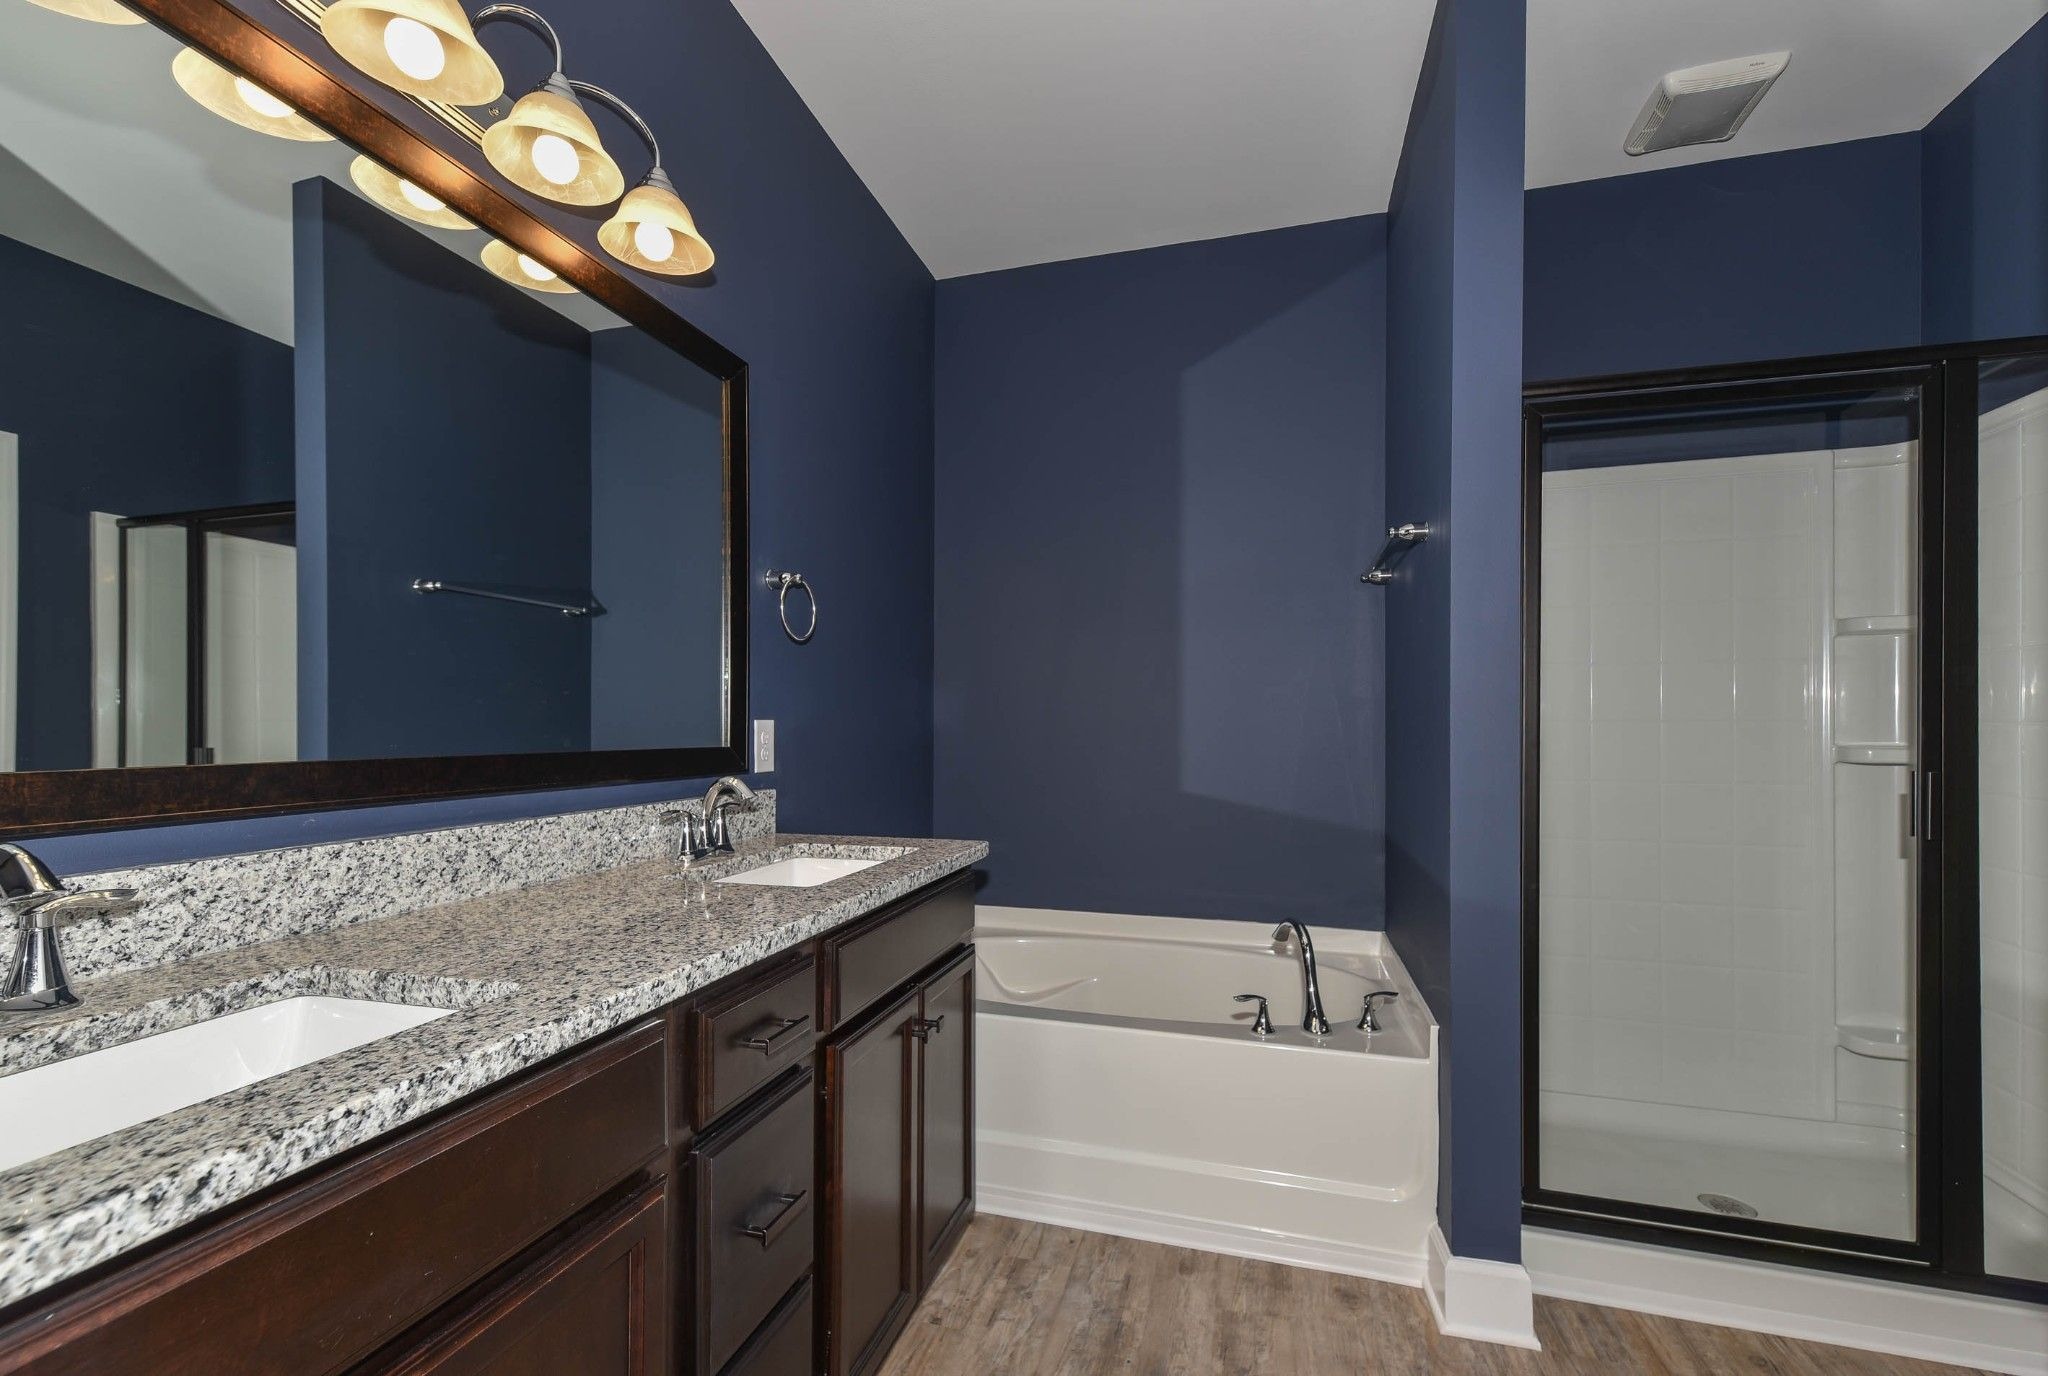 Bathroom featured in the Fripp By Ernest Homes in Savannah, GA